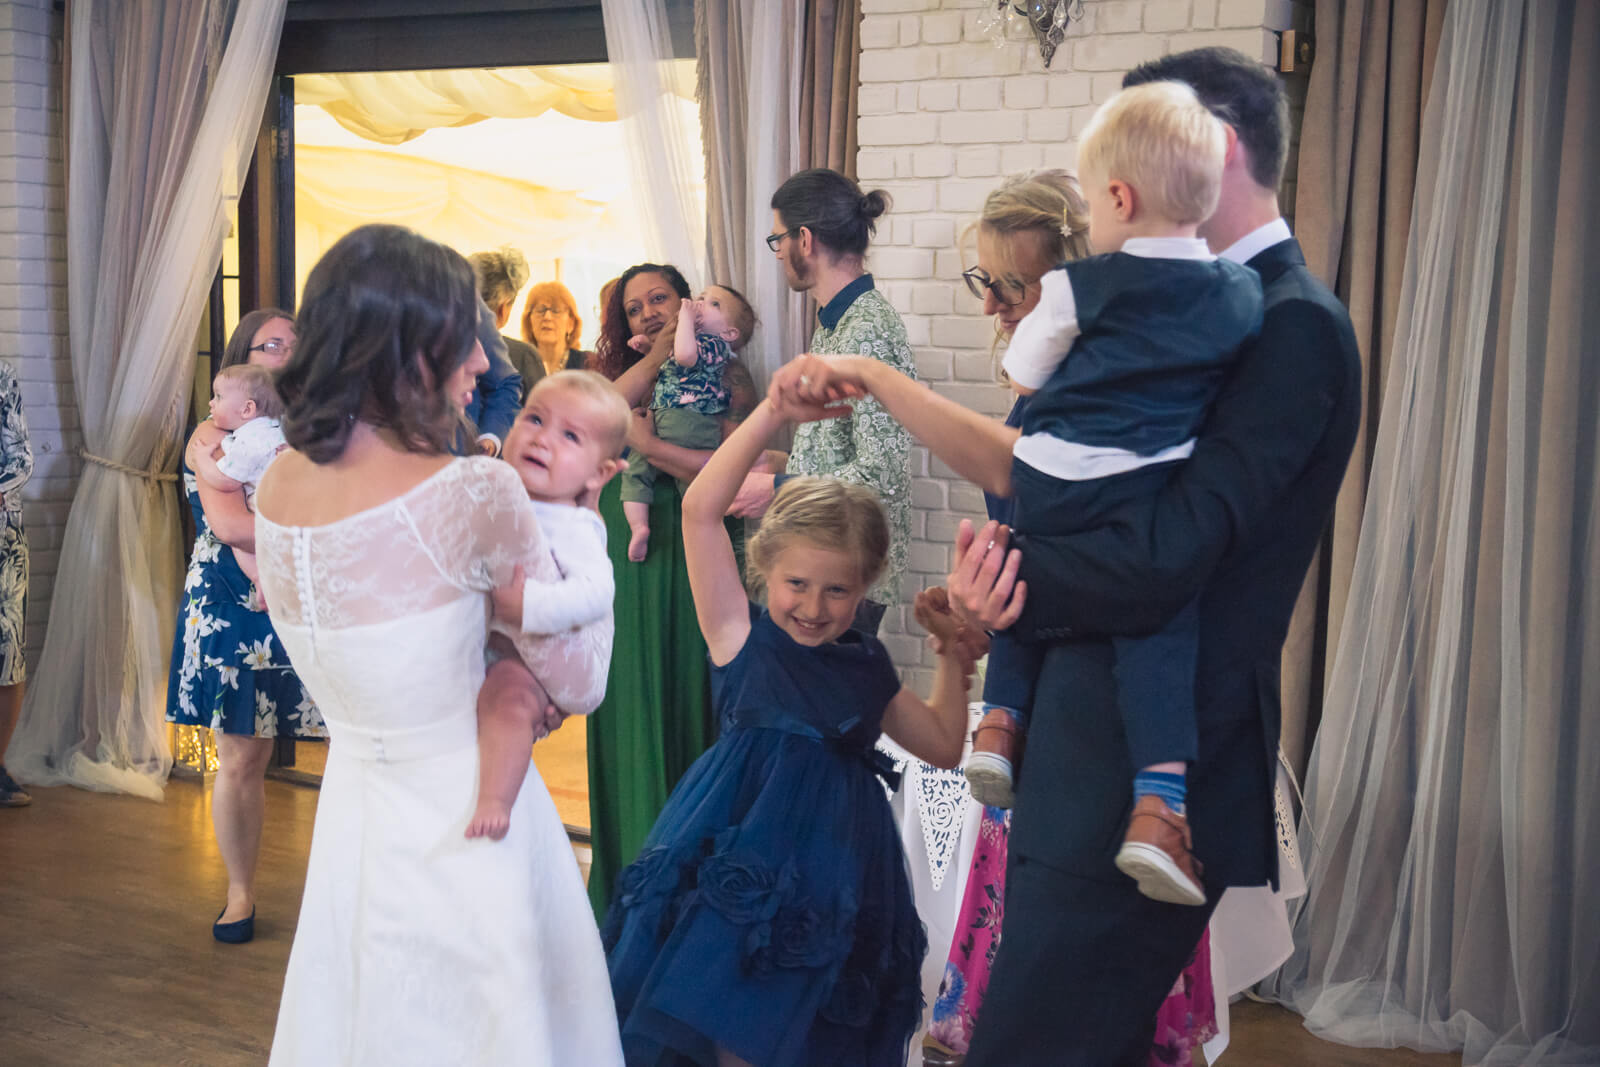 Family and children dance at wedding reception